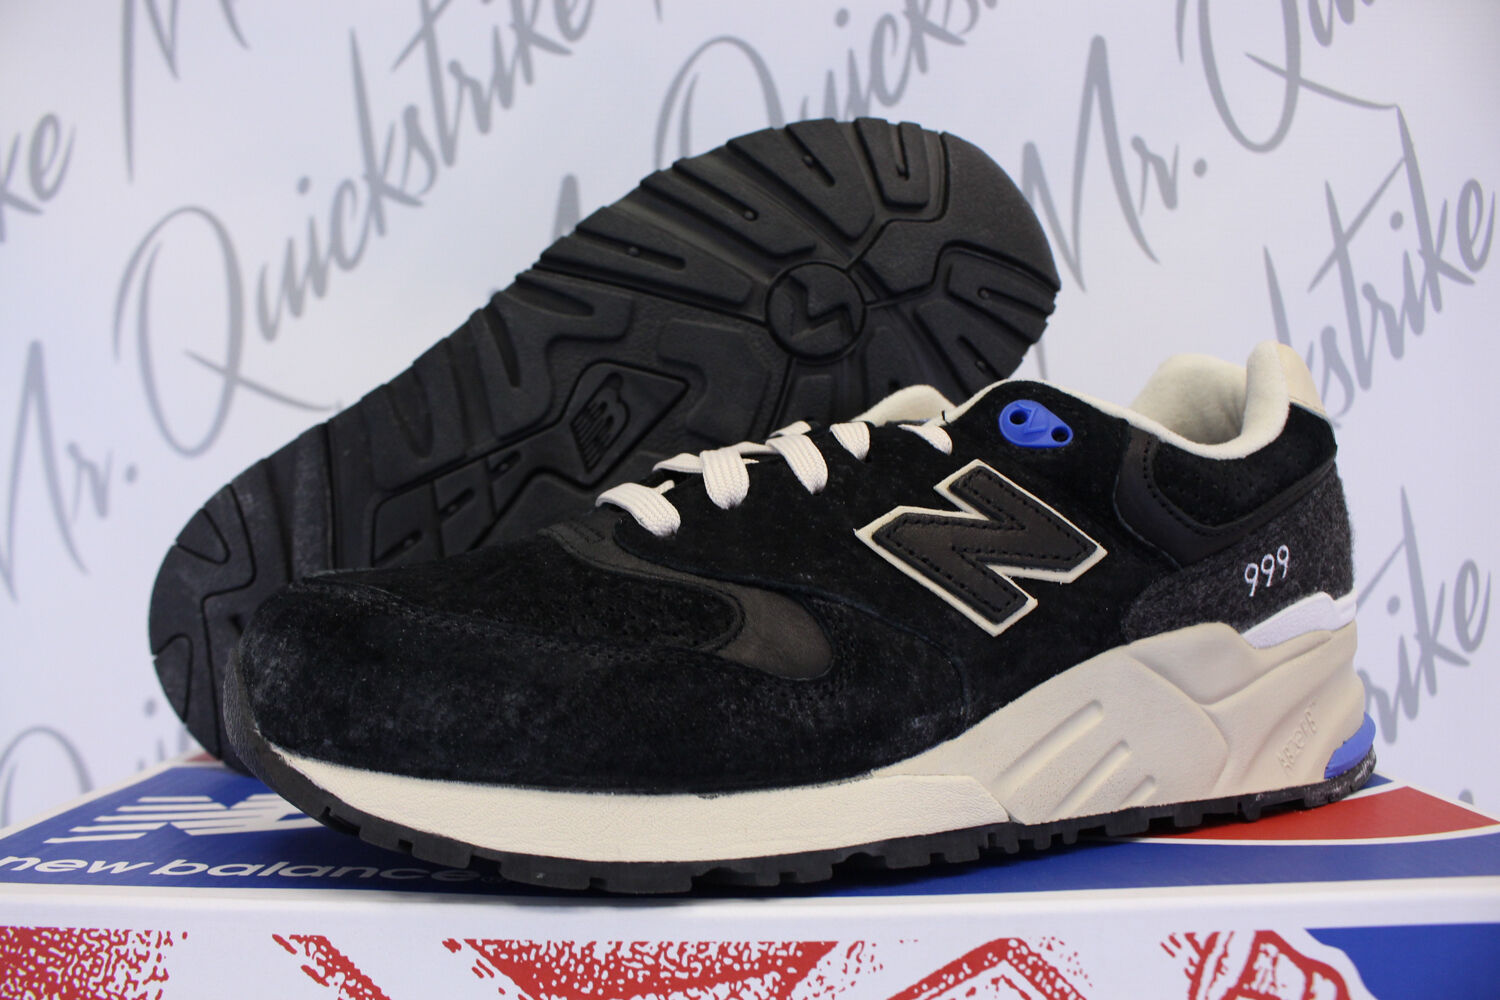 NEW BALANCE 999 WOOLLY MAMMOTH PACK SZ 7 BLACK BEIGE ROYAL ML999MMT